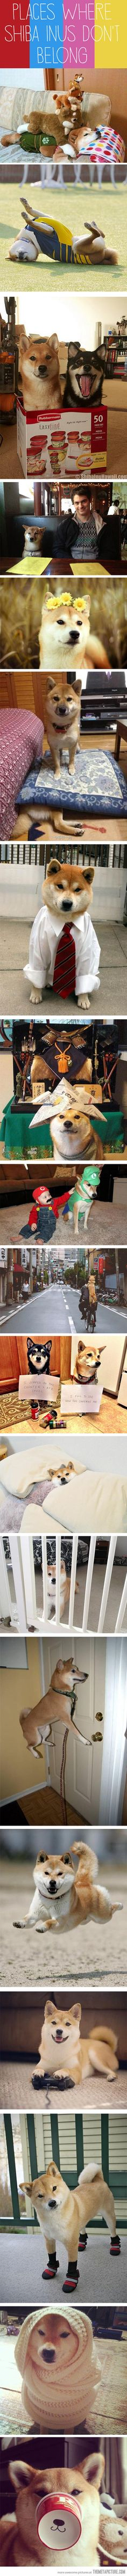 Places Shiba Inus don't belong…